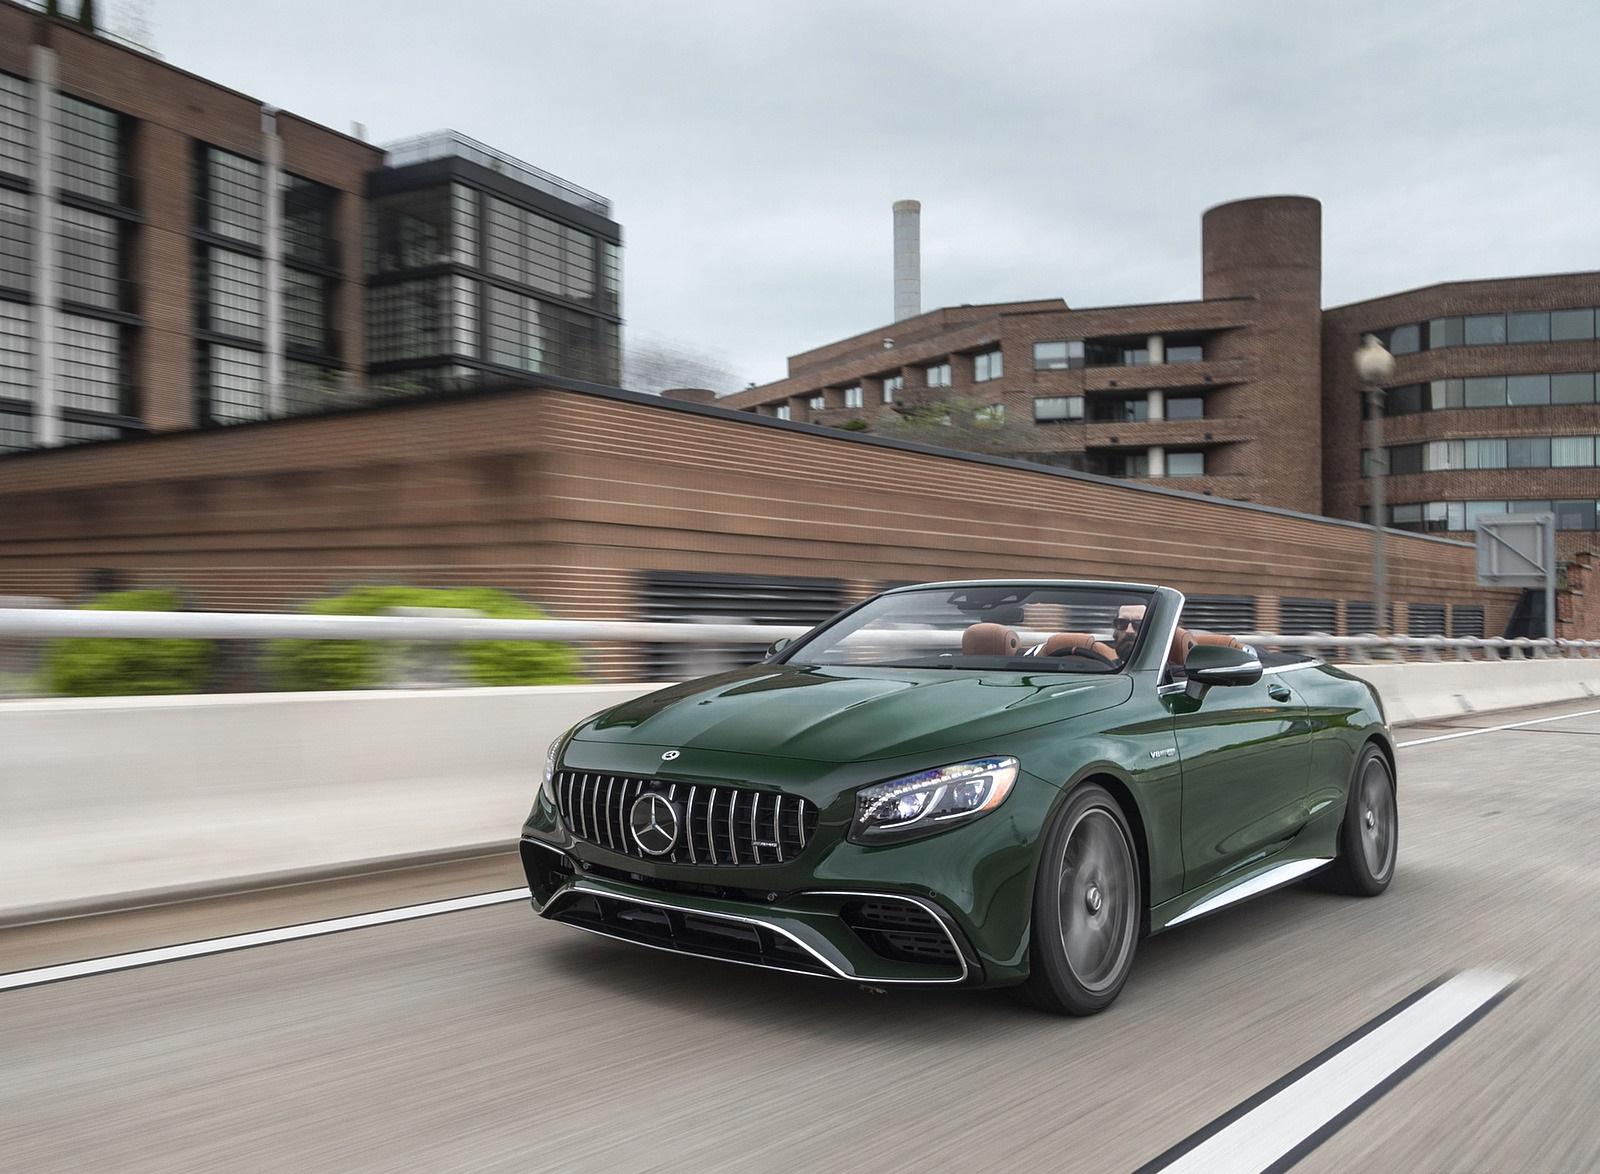 2020 Mercedes-AMG S 63 Cabriolet (US-Spec) Front Three-Quarter Wallpapers (6)